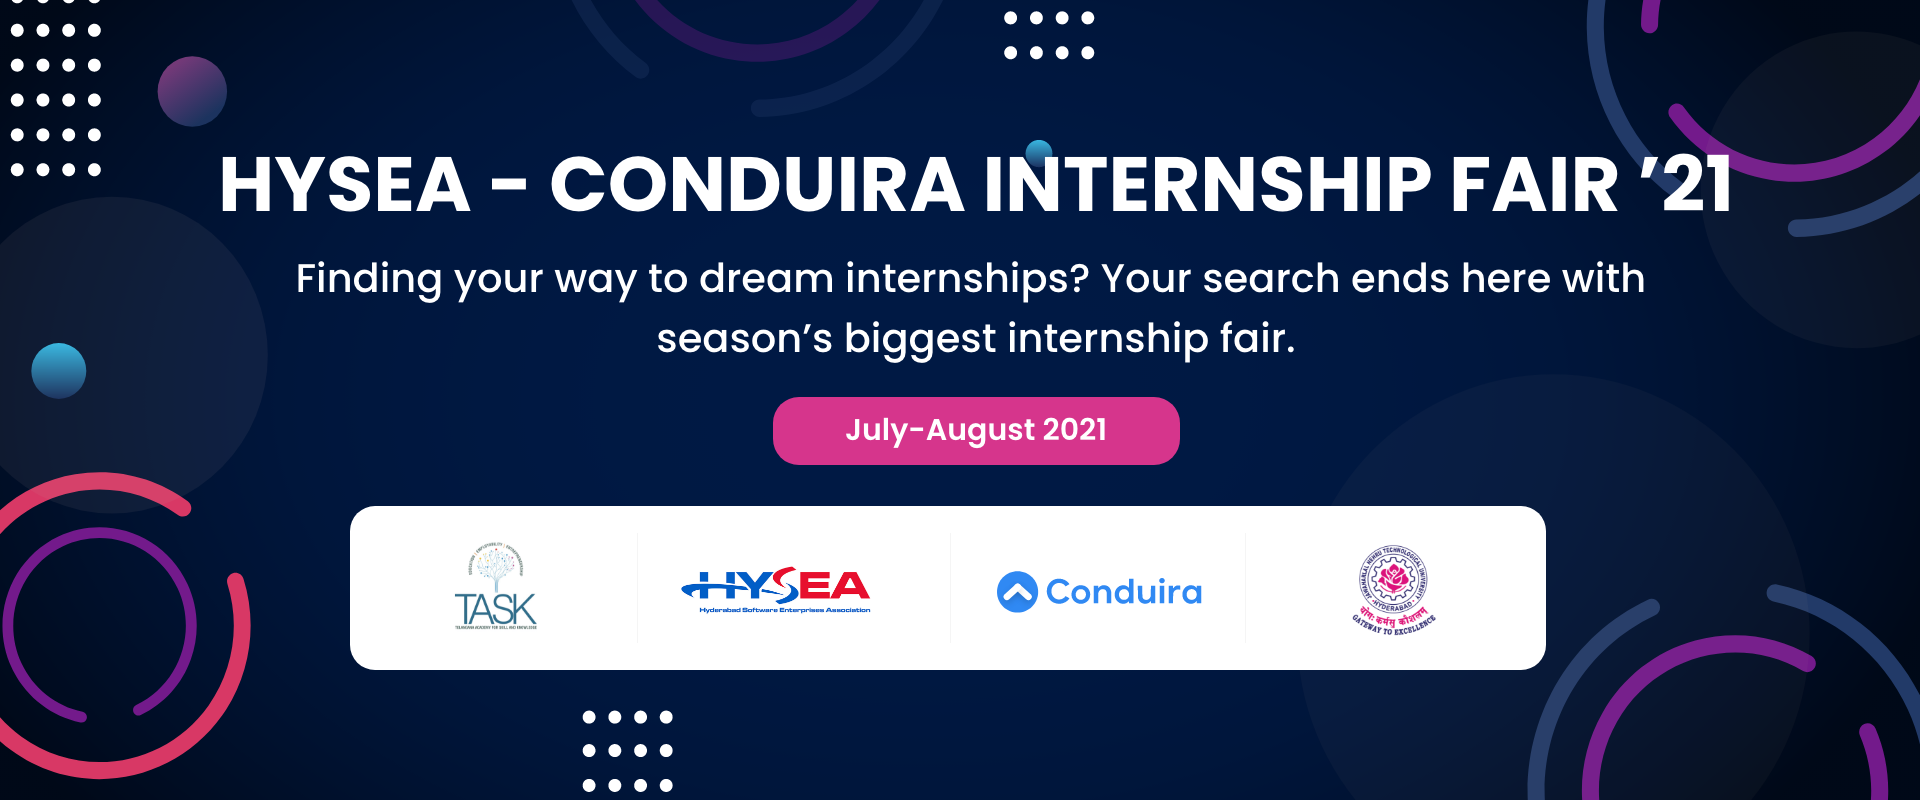 50+ companies are expected to float 100 + internship roles and 800+ internship positions